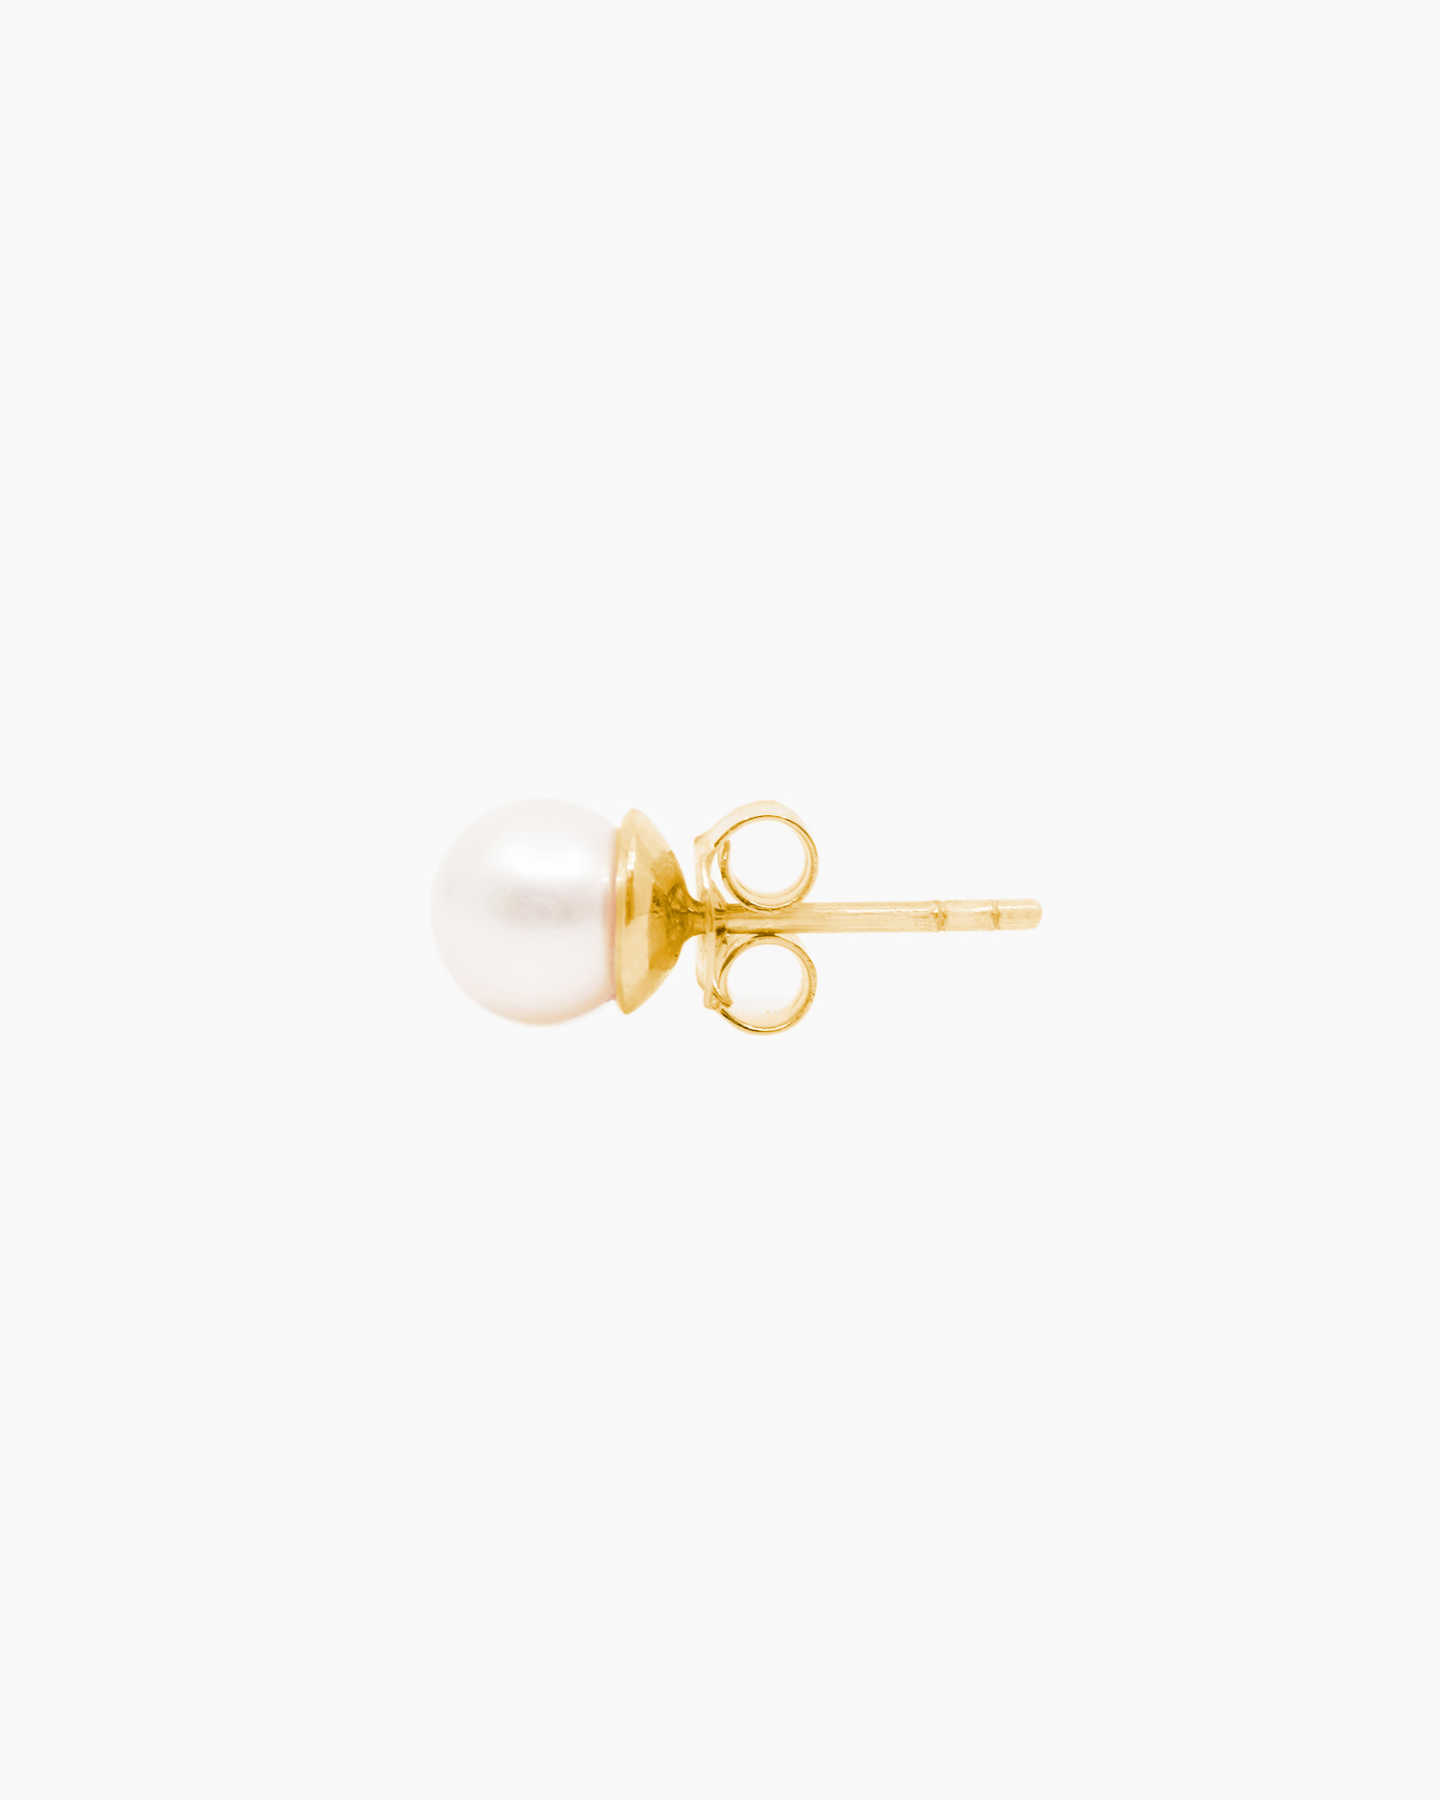 Freshwater Cultured Pearl Stud Earrings - Yellow Gold - 1